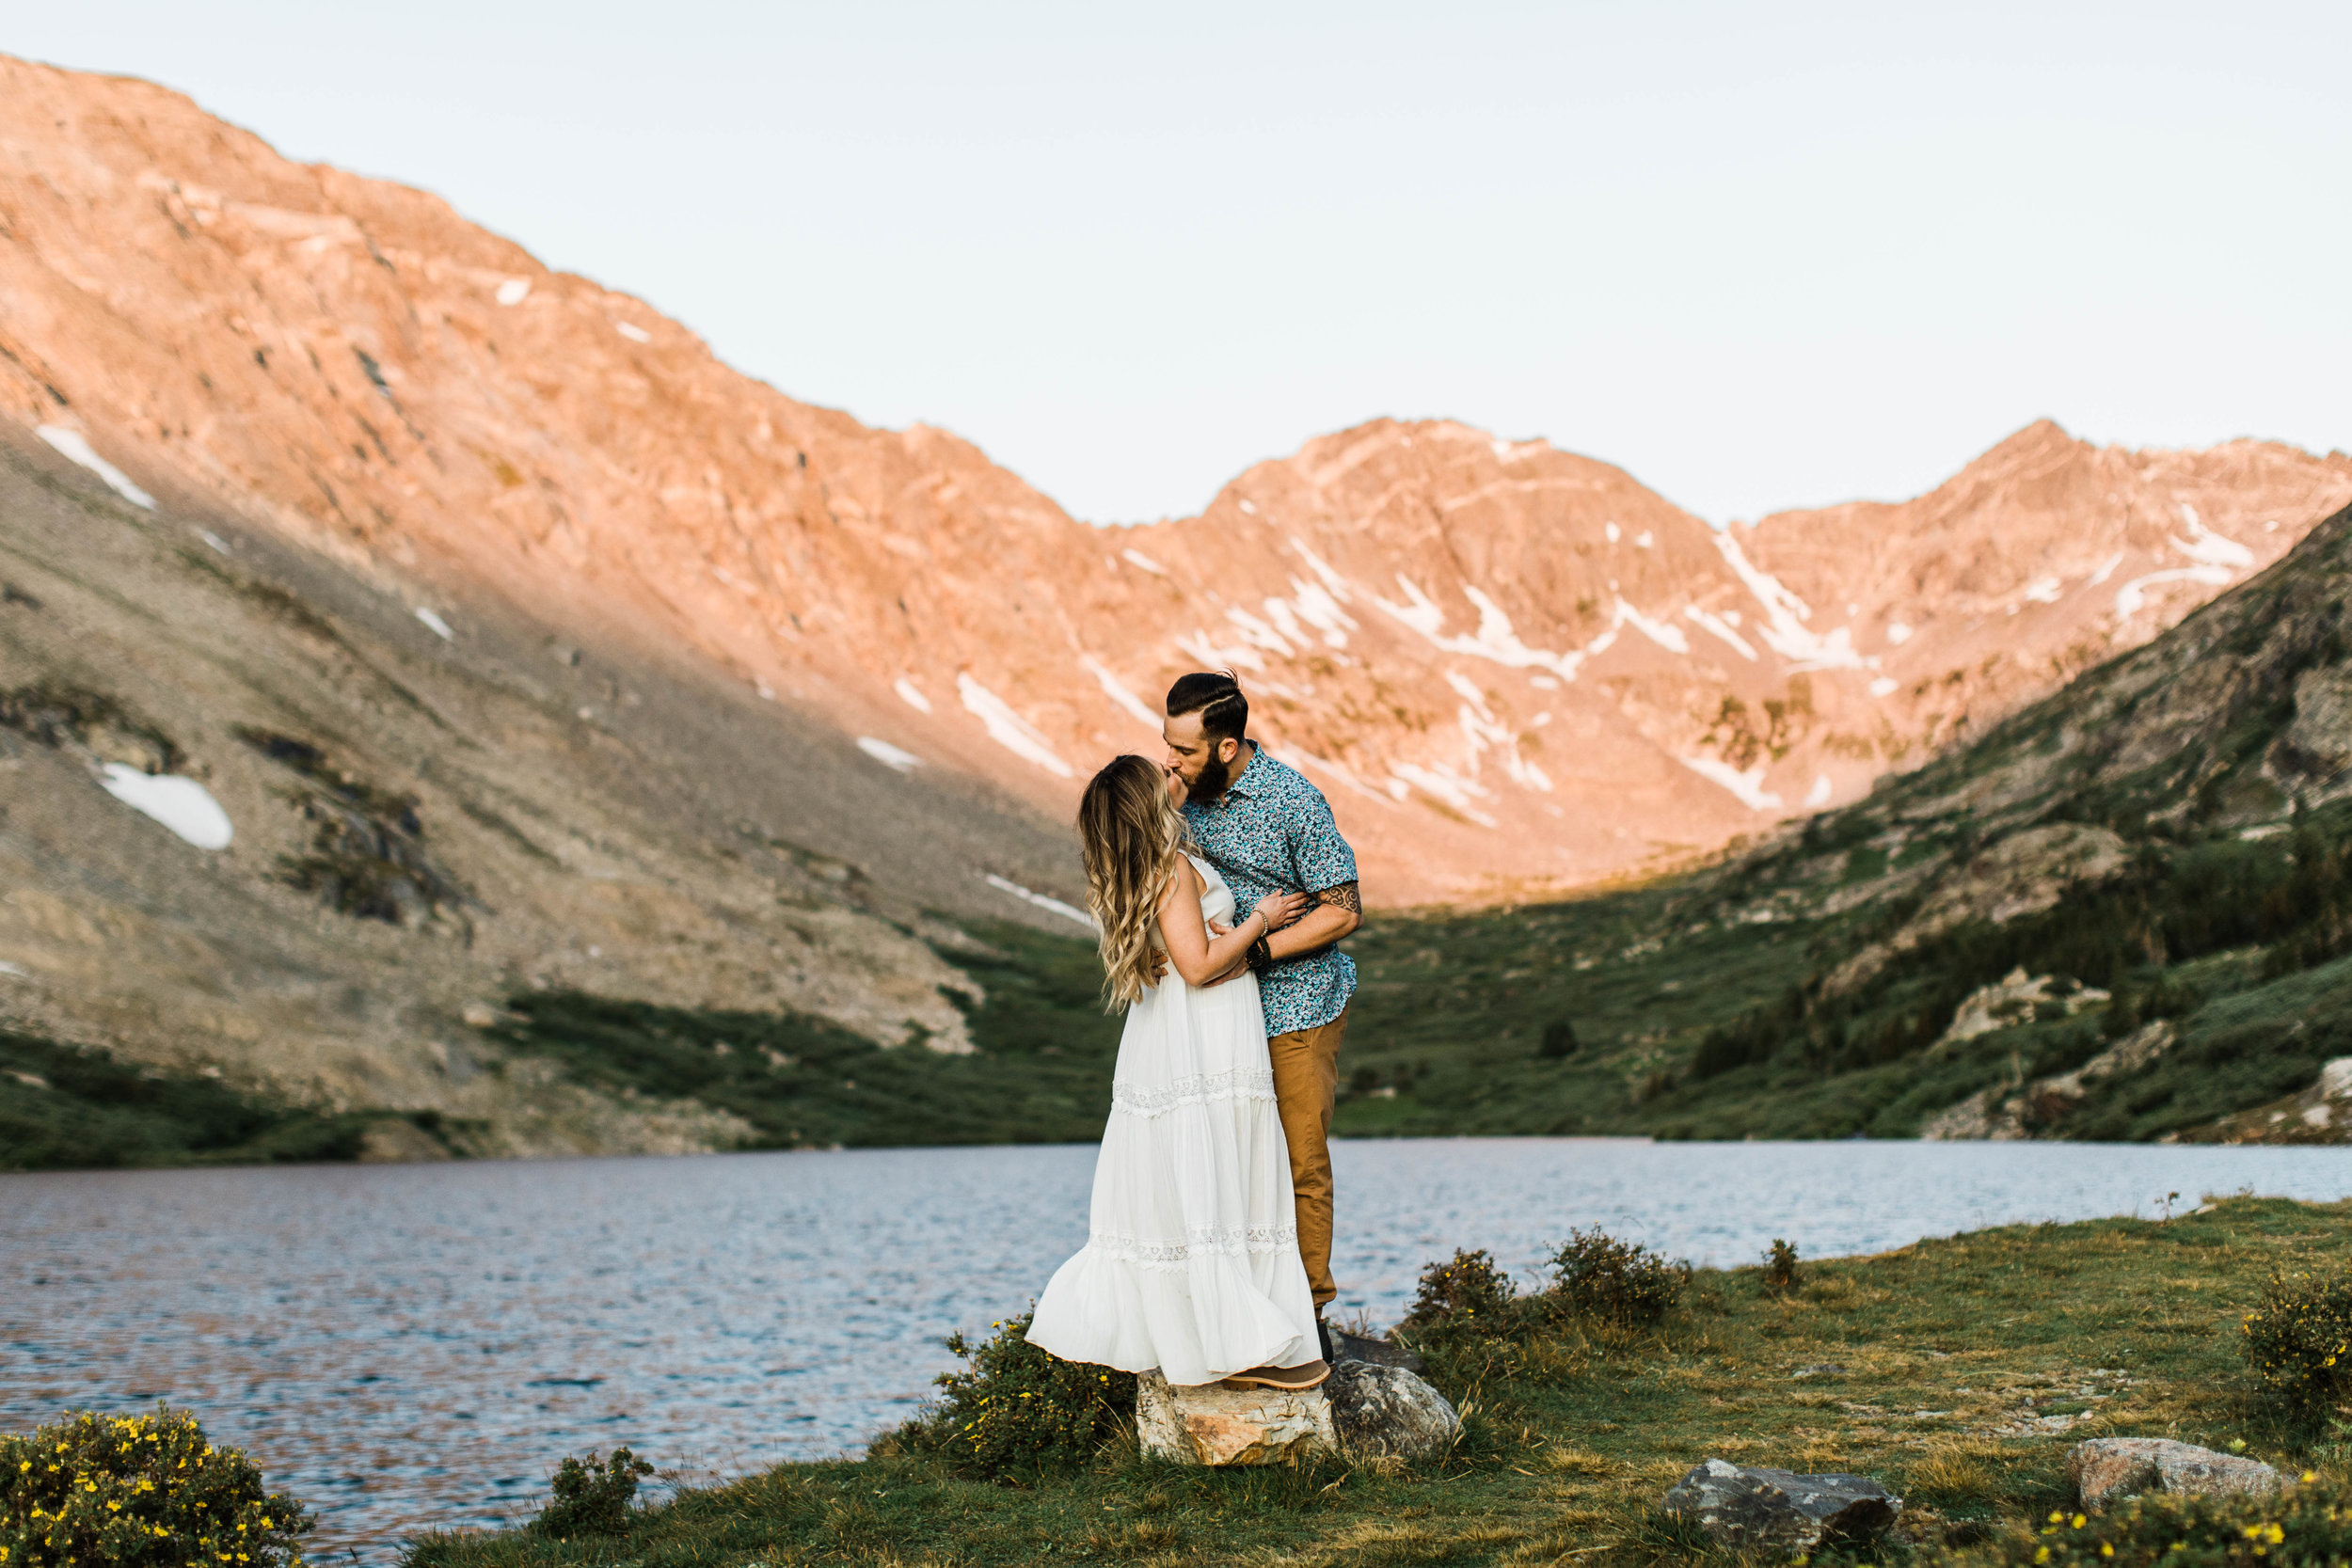 couple kissing in their wedding attire during their Breckenridge adventure session in the Colorado mountains | adventure elopement photographers near Breckenridge